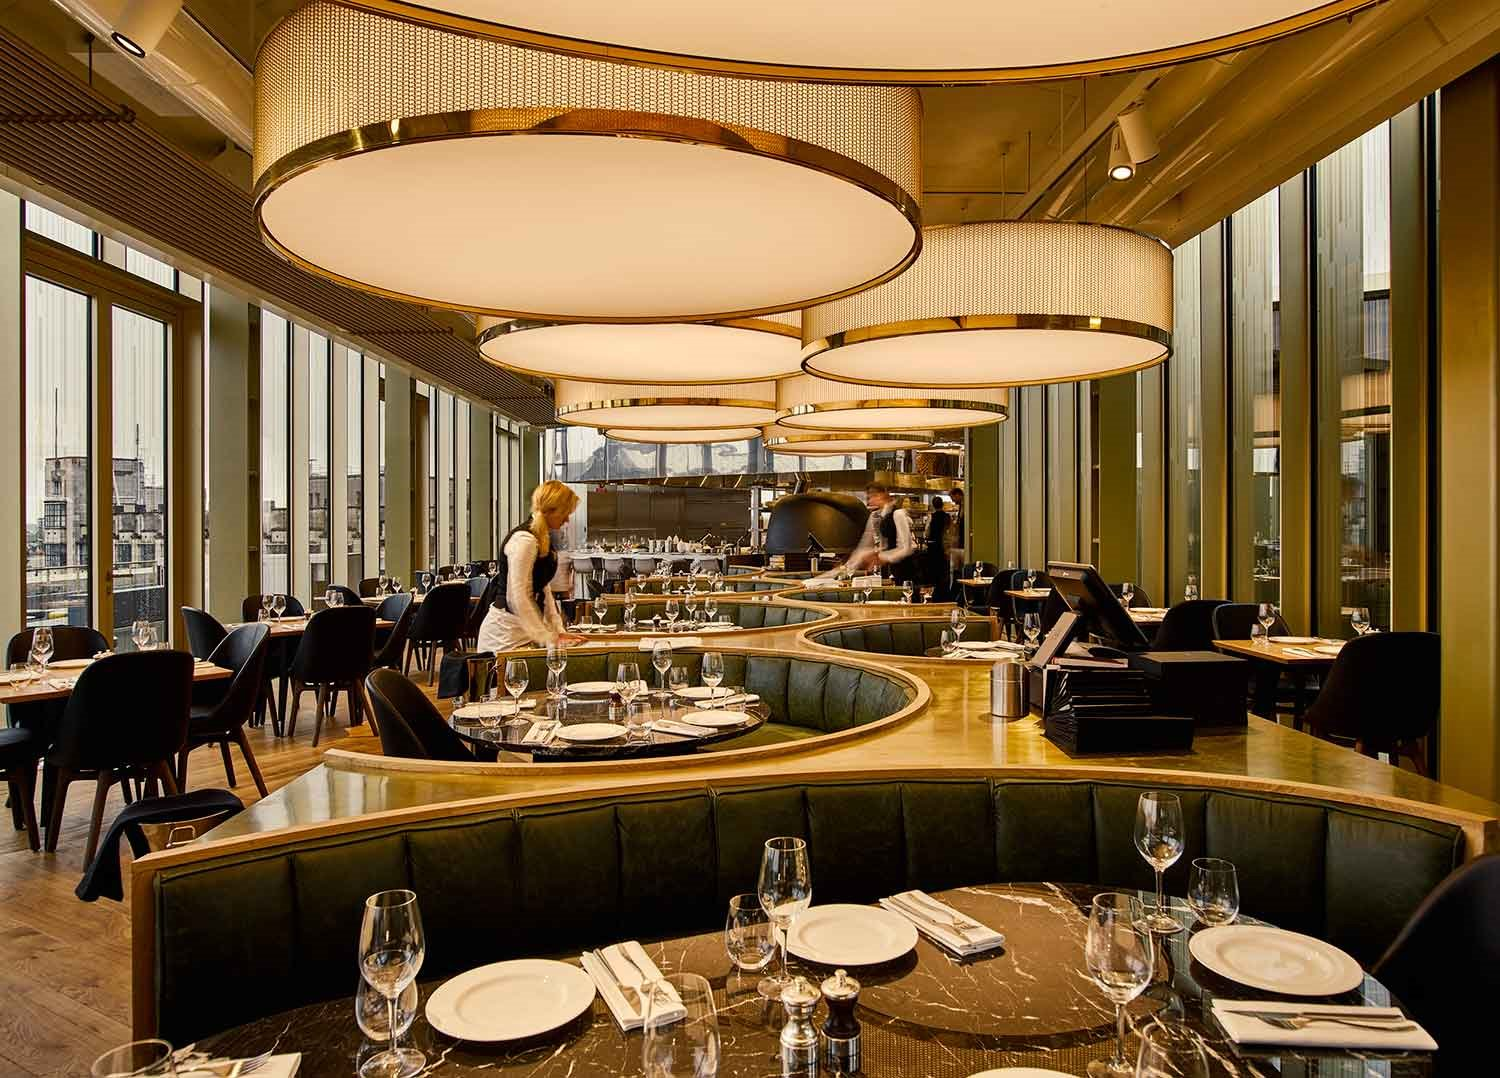 MR.-PORTER-Restaurant-at-the-W-Amsterdam-lamparas